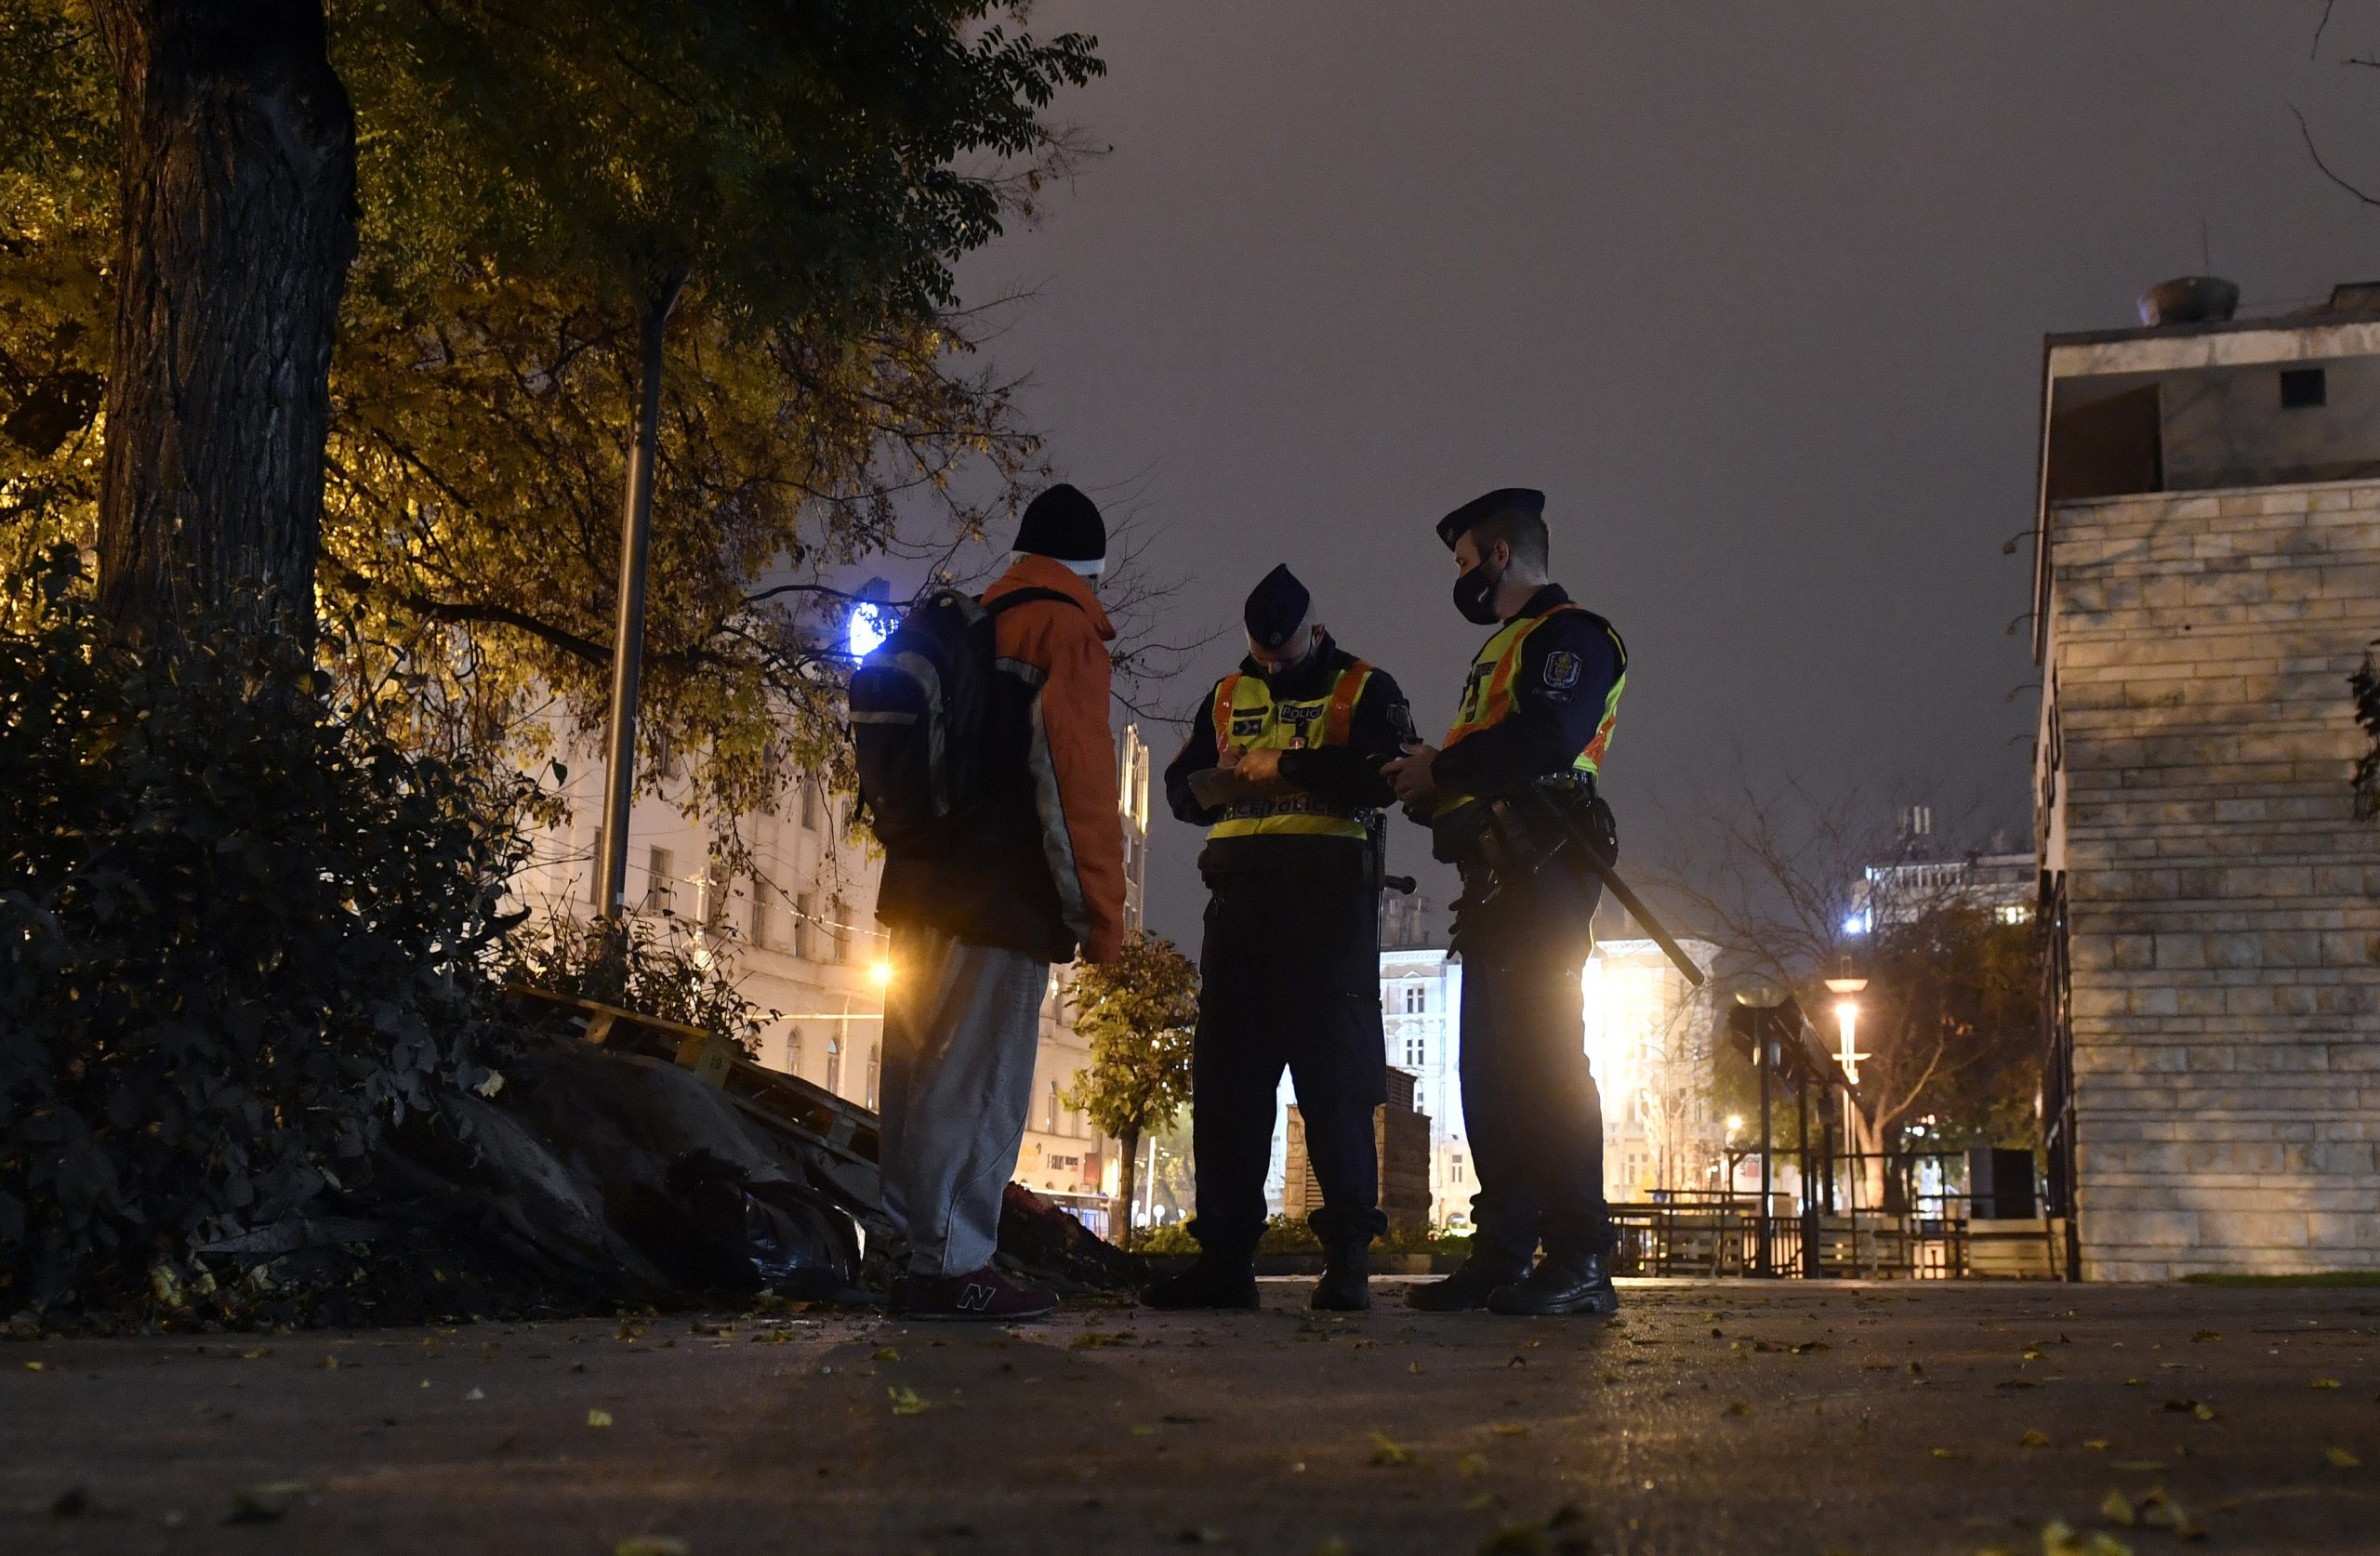 Hungarians Breaking Coronavirus Restrictions Increases Police Activity